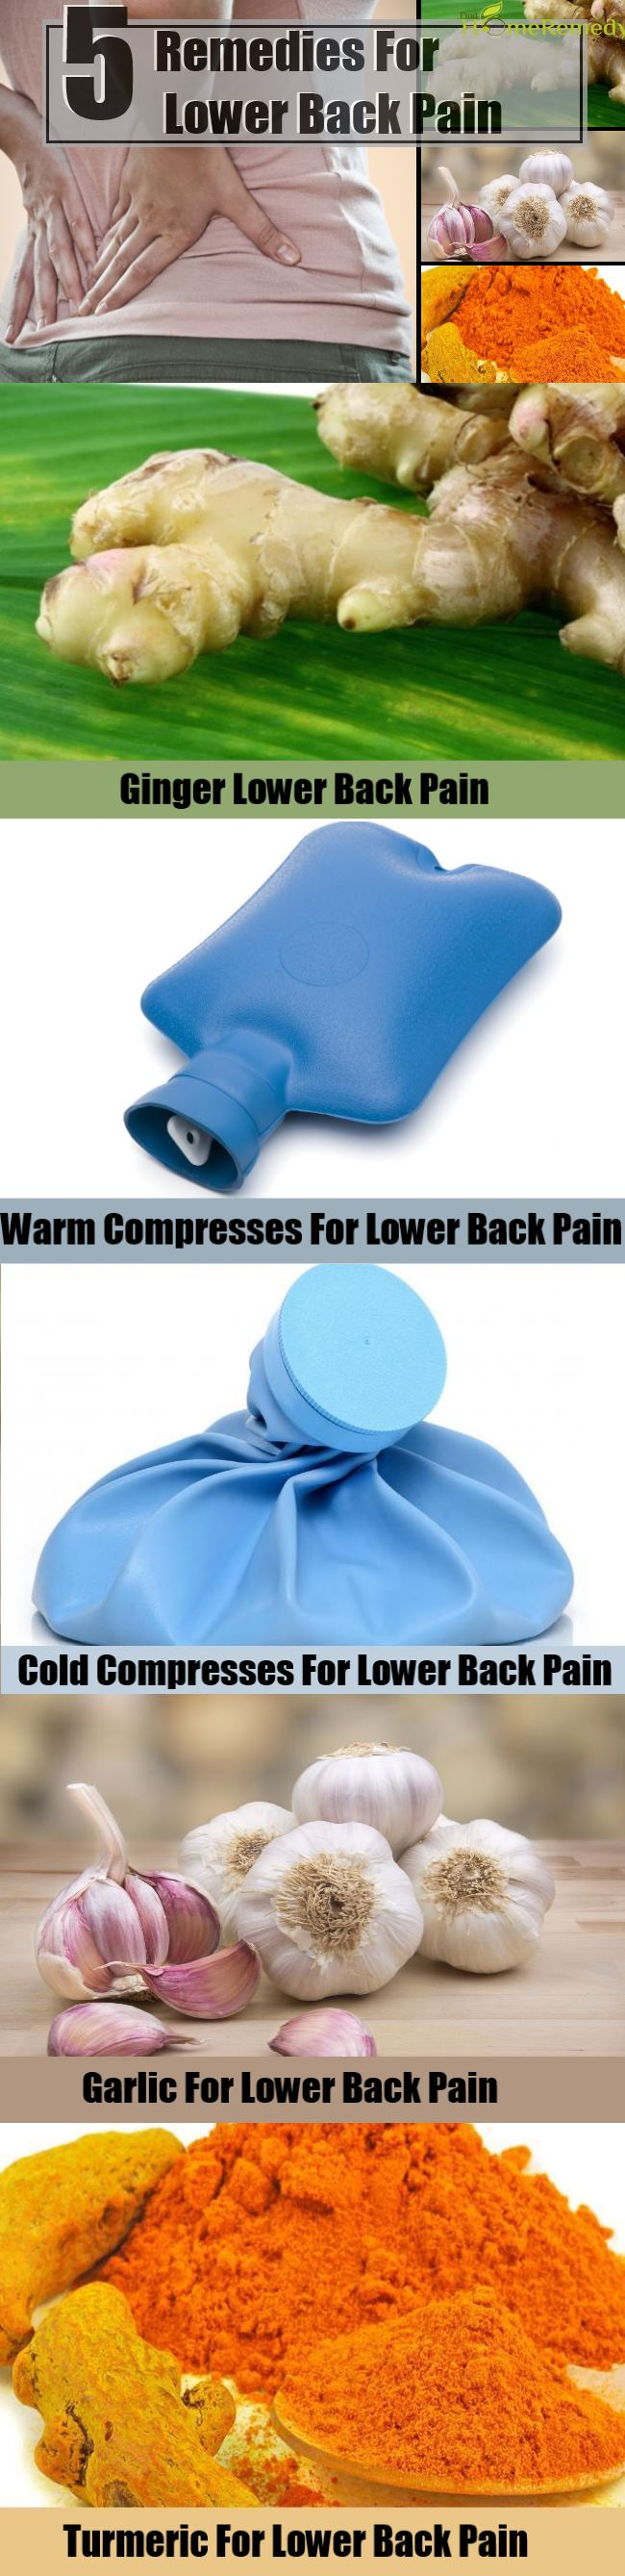 Lower Back Pain.